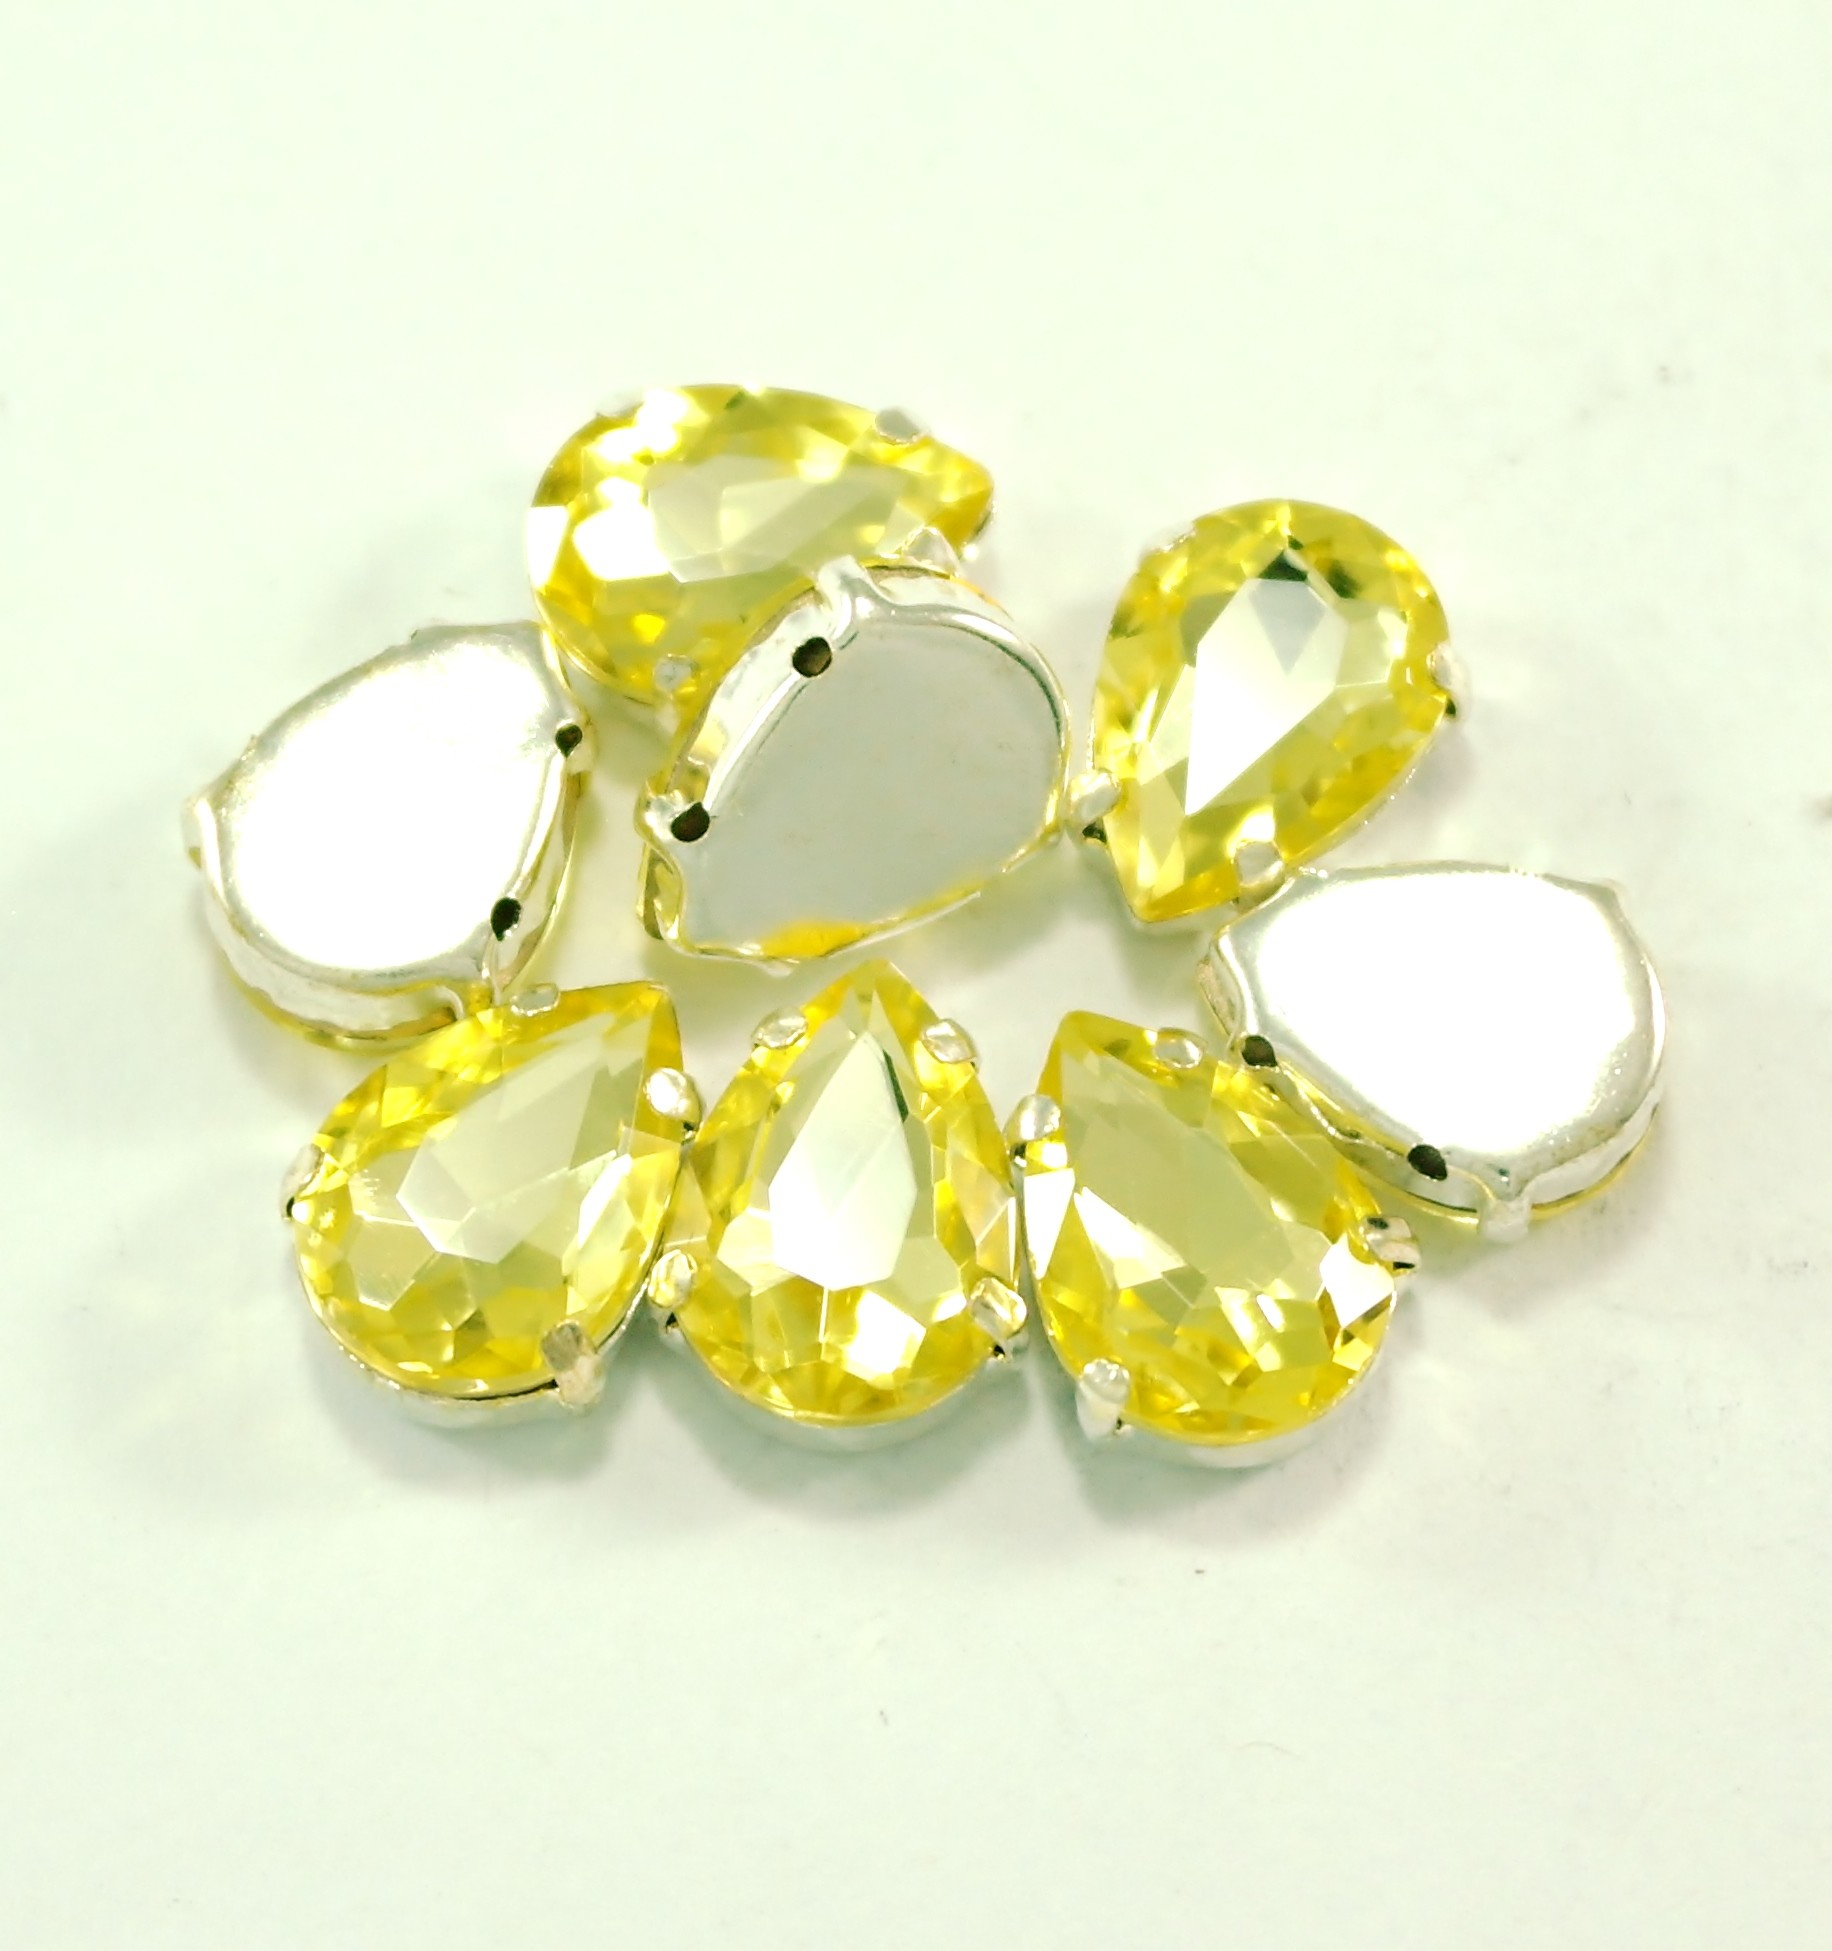 GLASS BEADS - JONQUIL TEAR DROP (T8)